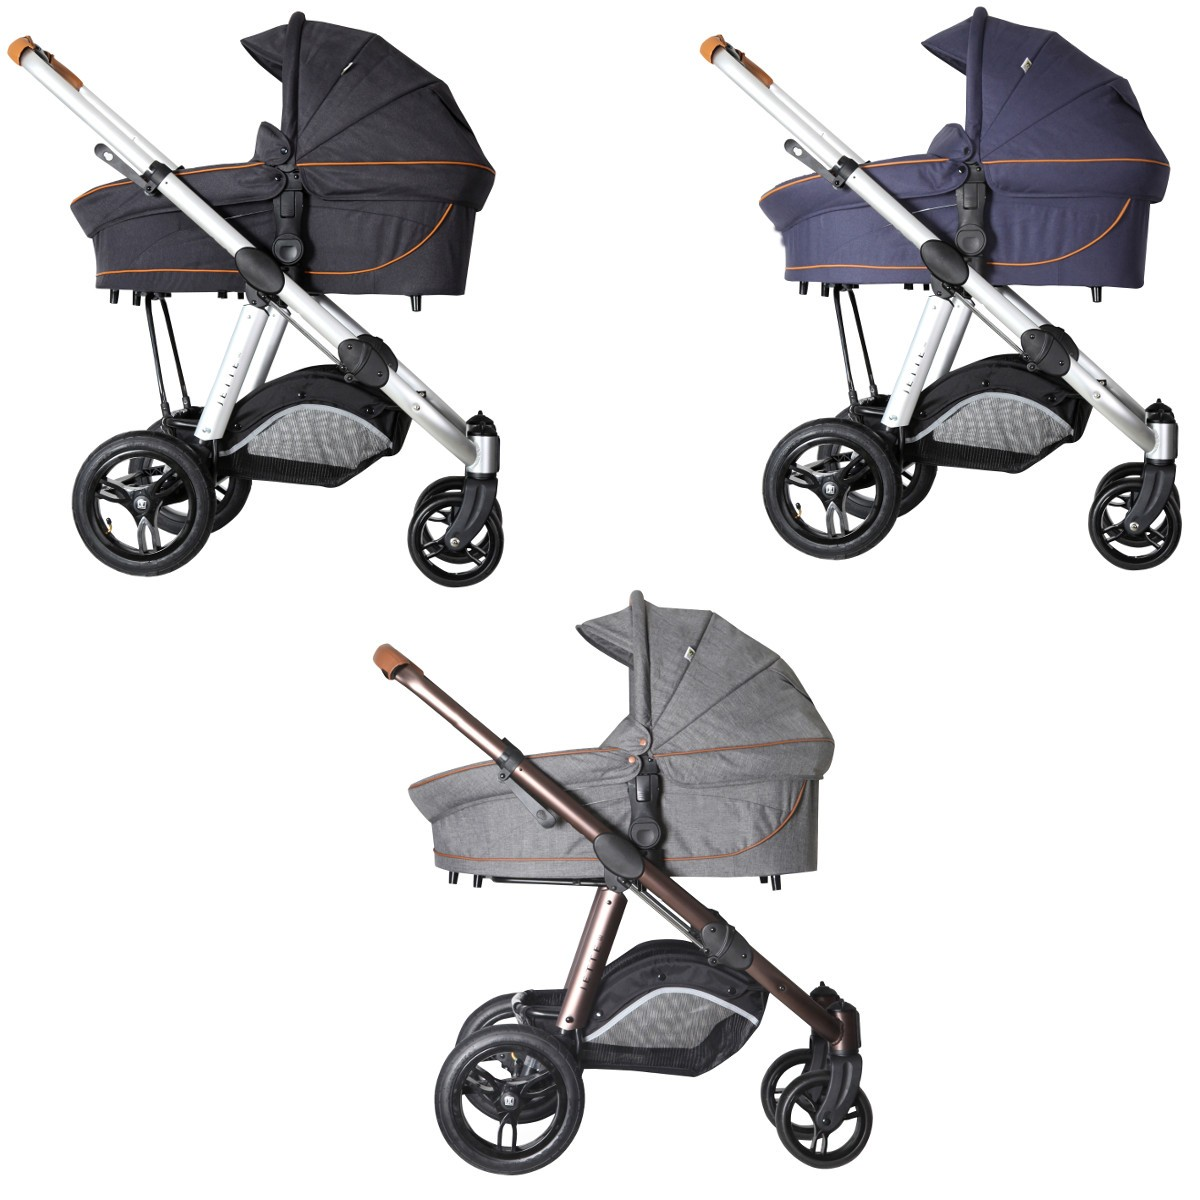 jette joel air kombi kinderwagen 2in1 mit babywanne sportwagenaufsatz buggy. Black Bedroom Furniture Sets. Home Design Ideas